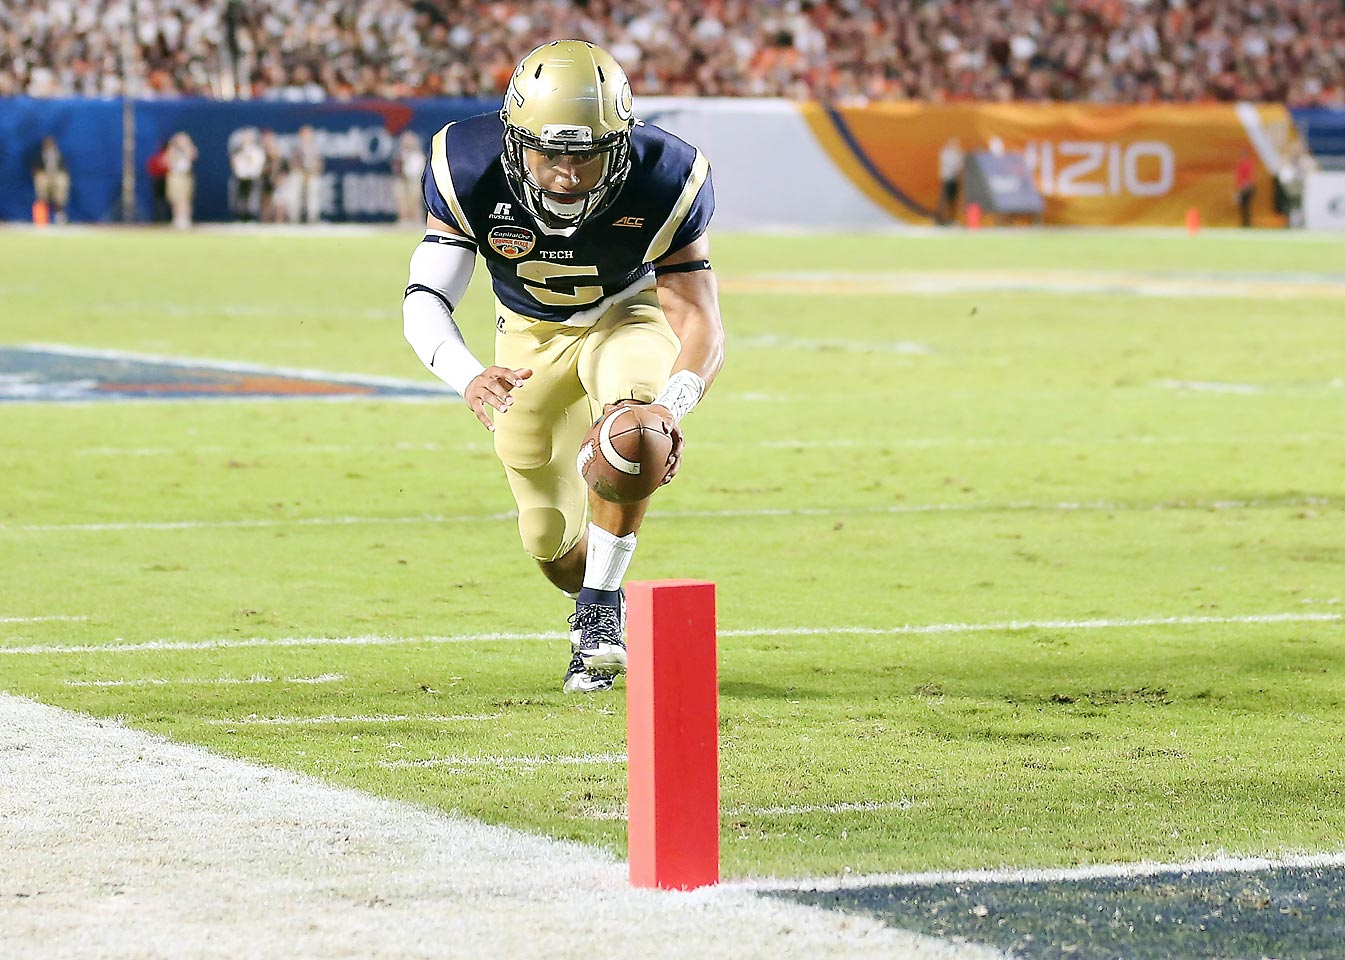 Thomas threw and ran for over 2,800 combined yards combined last season, guiding the Yellow Jackets all the way to the ACC title game and an Orange Bowl victory. With running backs Synjyn Days, Zach Laskey and Charles Perkins gone, Thomas will have to shoulder even more of the offense in 2015.